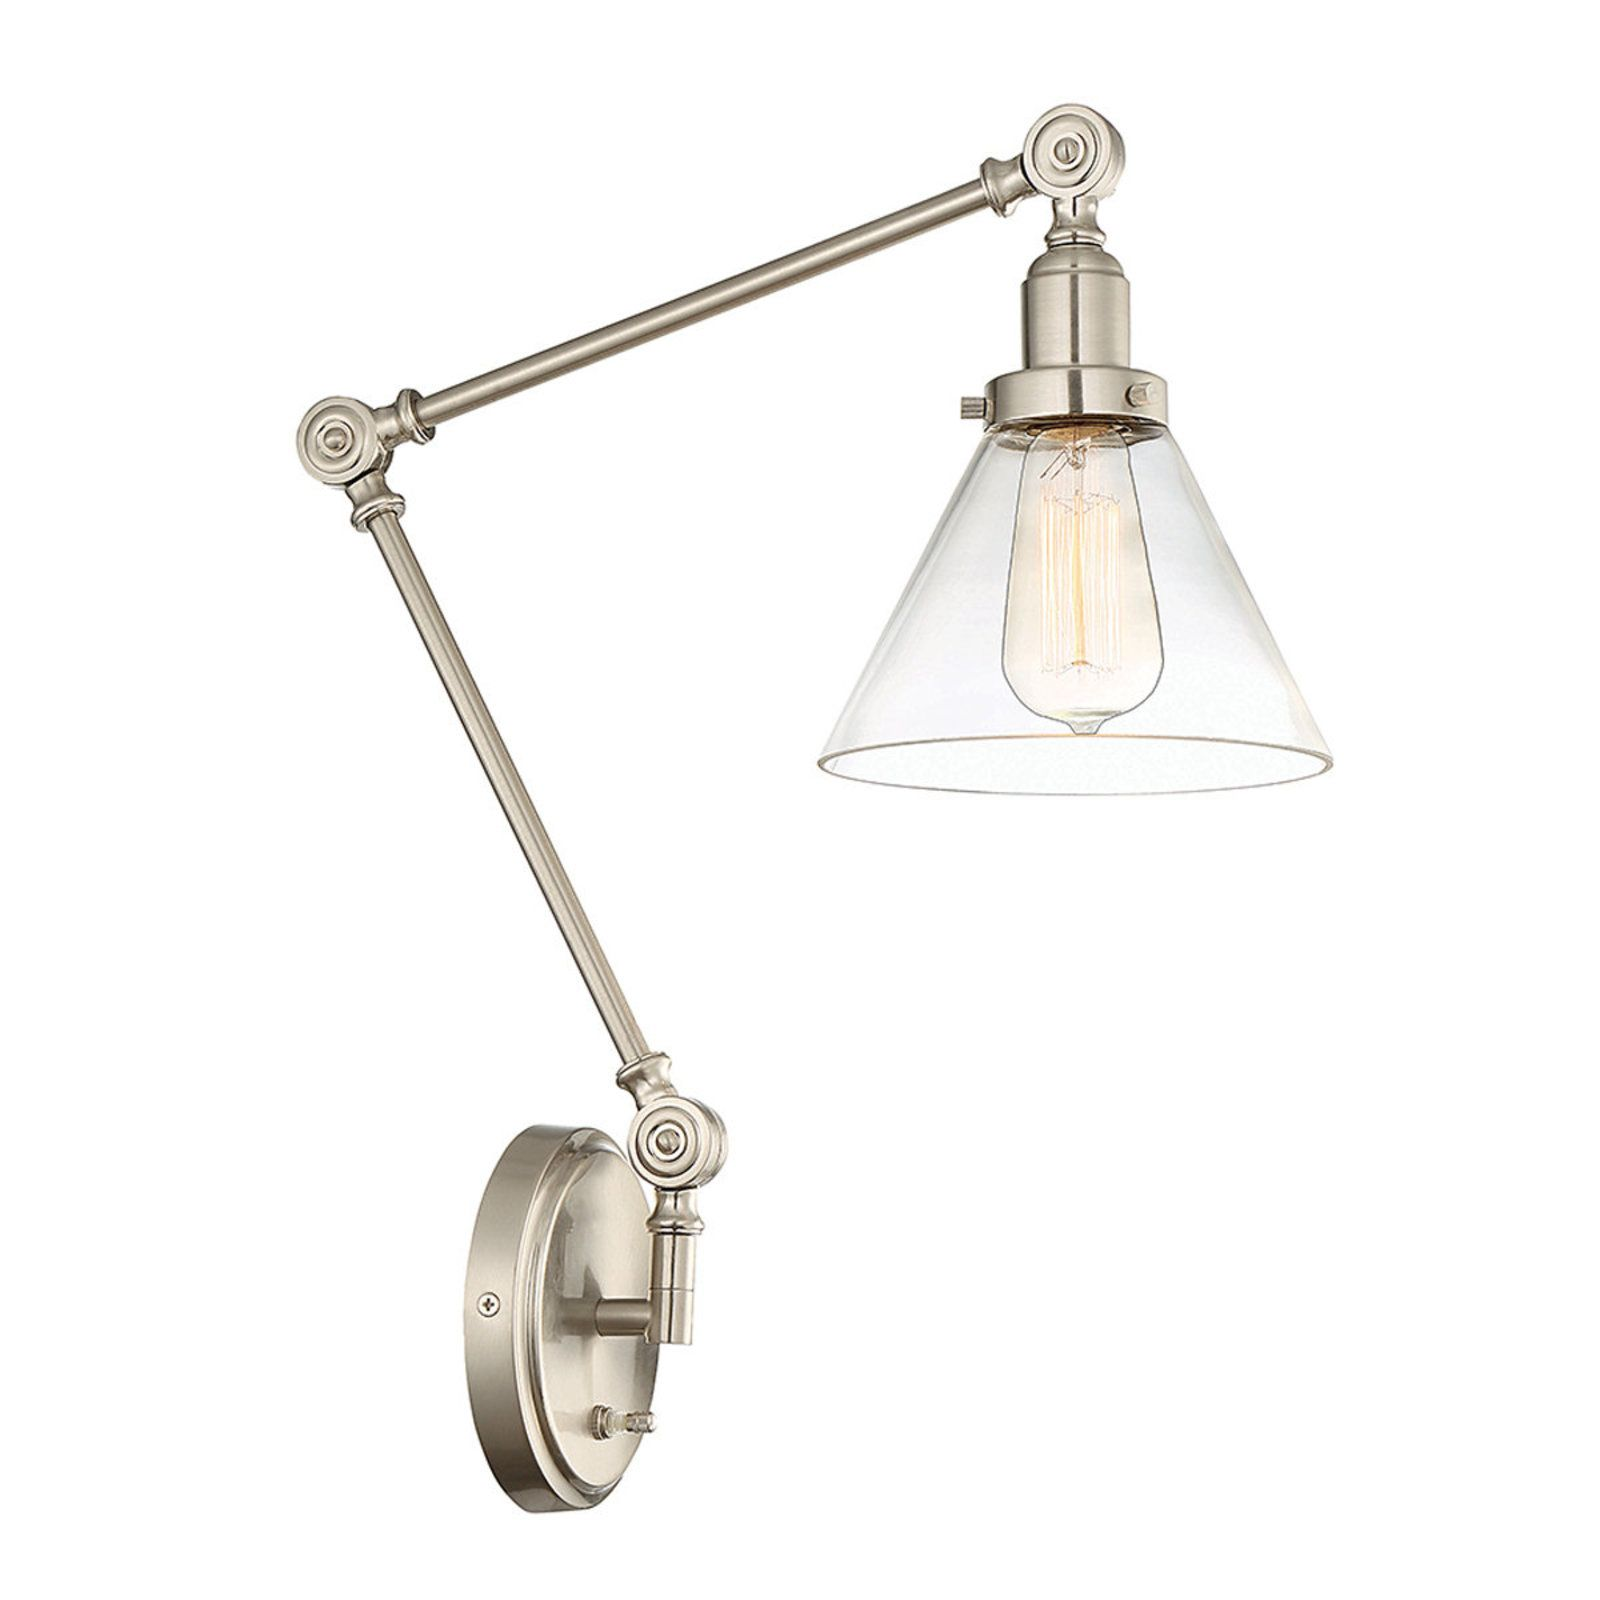 industrial triangle shade swing arm wall sconce swing arm wall